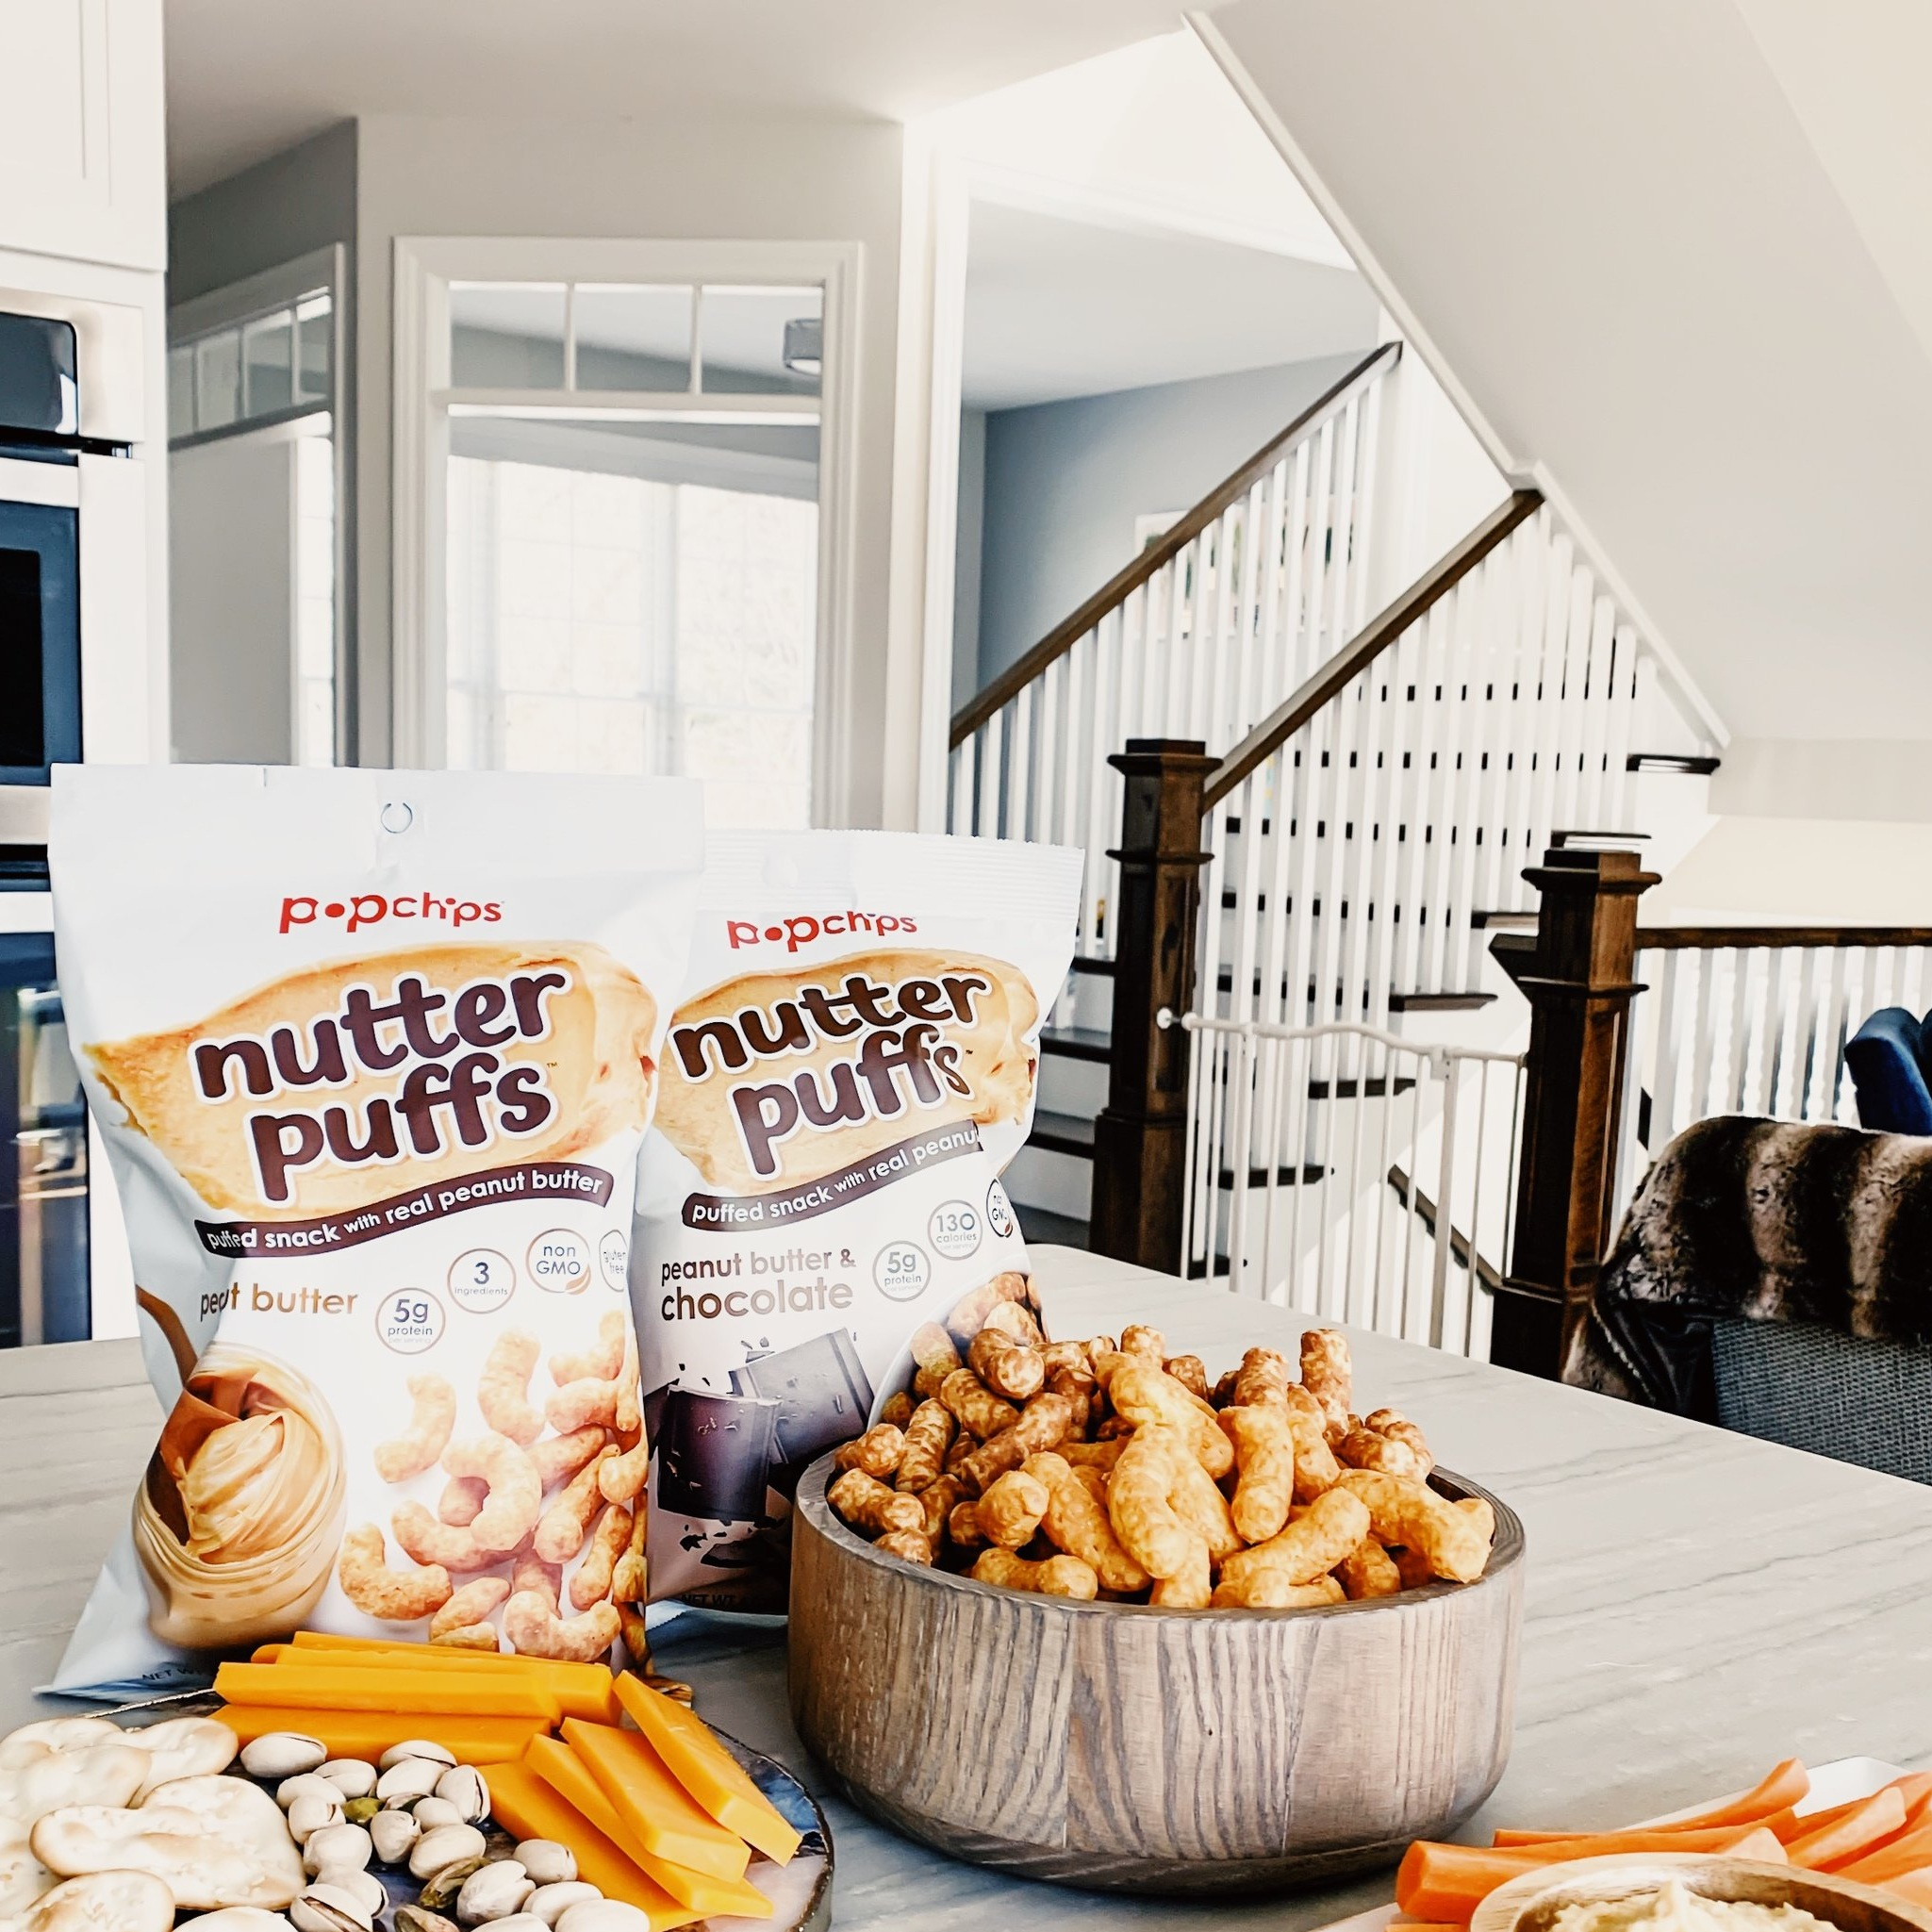 Easy Snack And Appetizers Ideas For a Lunch-Time Gathering. nutter puffs - delicious gluten-free, non-gmo, vegan snack option for any part of the day. nutter puffs by popchips. Indulgent peanut butter snack ideas. #ad #popchips #spreadthelove #nutterpuffs #snack #ideas